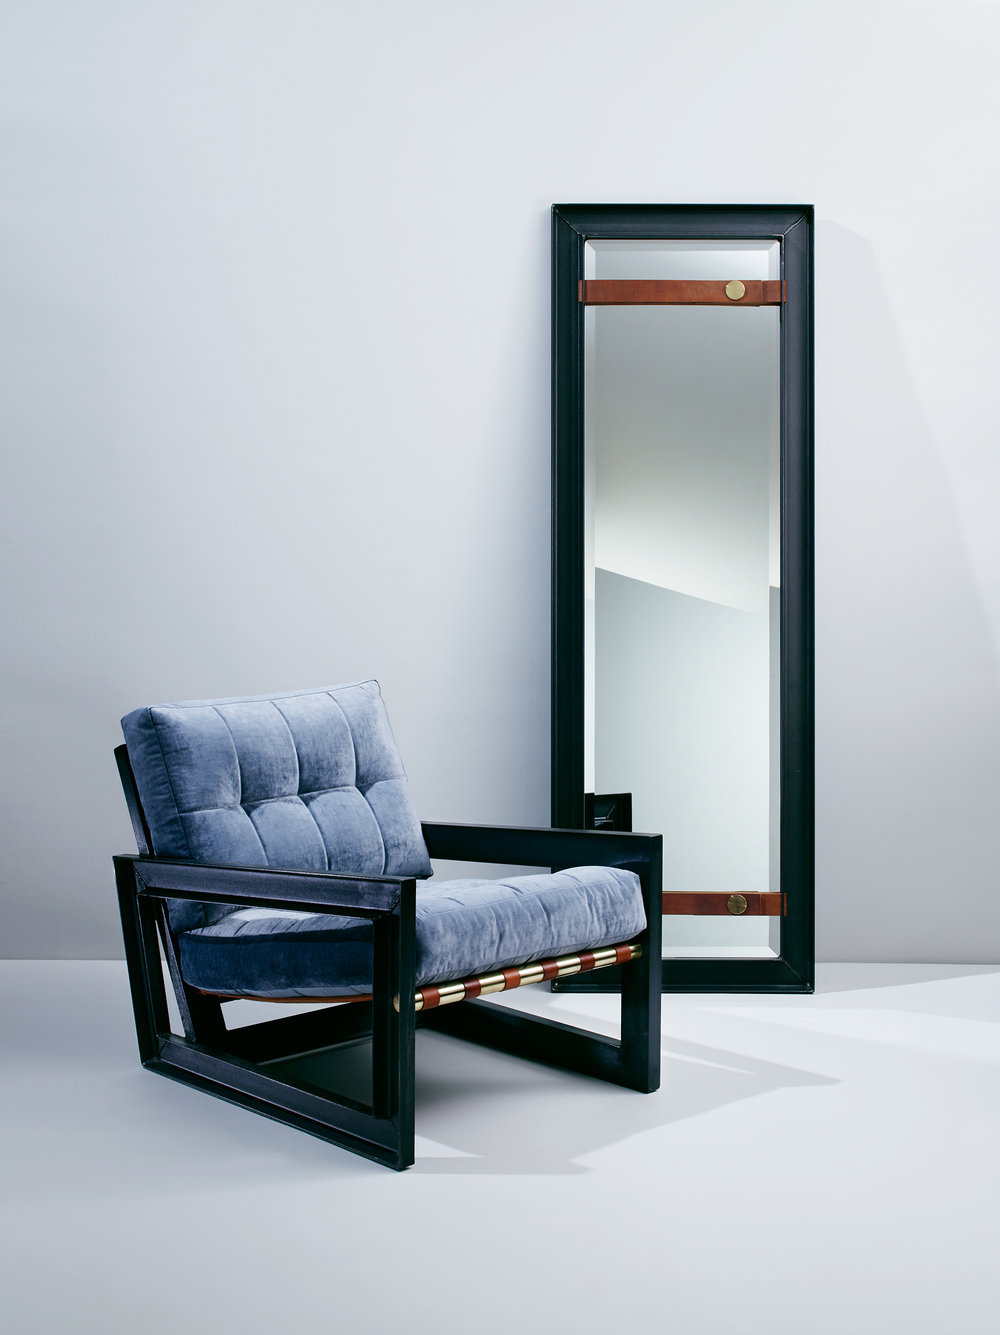 PS1_Blue_Chair_Mirror_COMP_Oa_FLLR.jpg